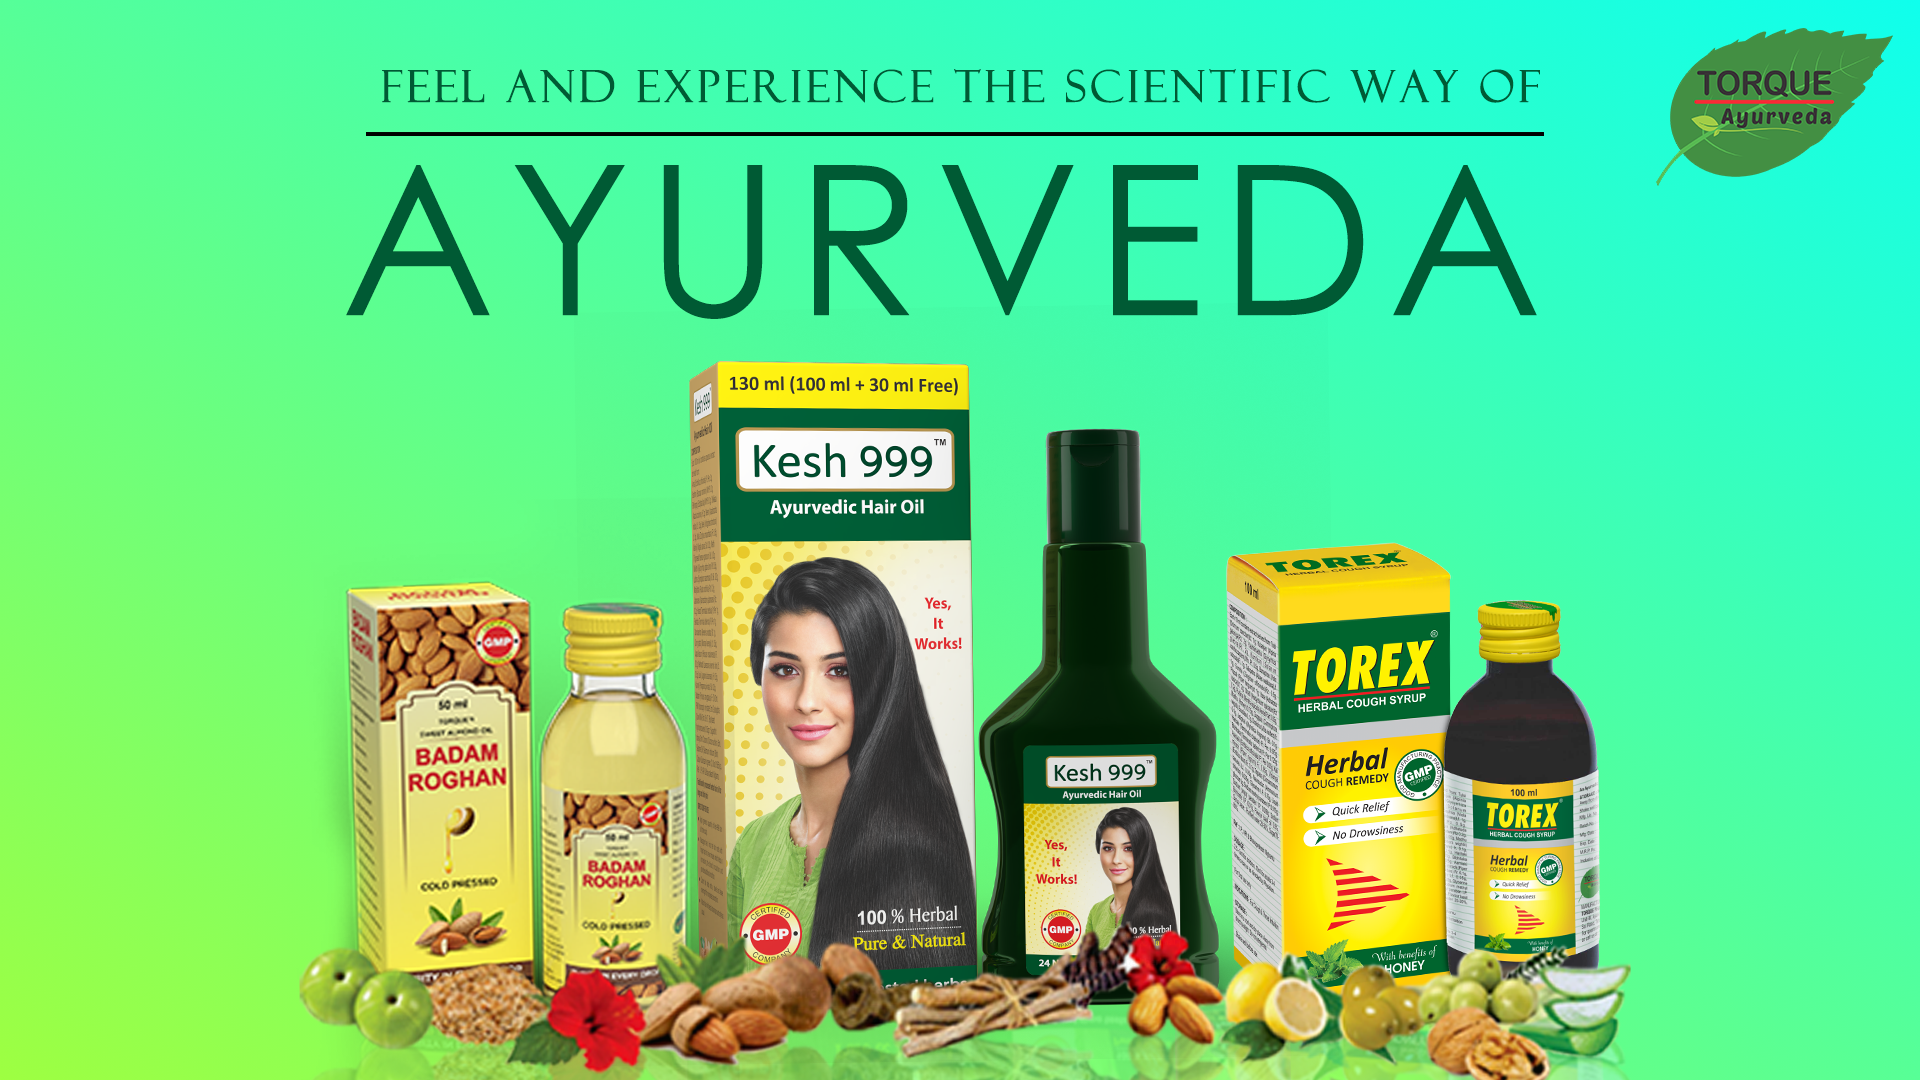 Know more about Ayurveda and ayurvedic products